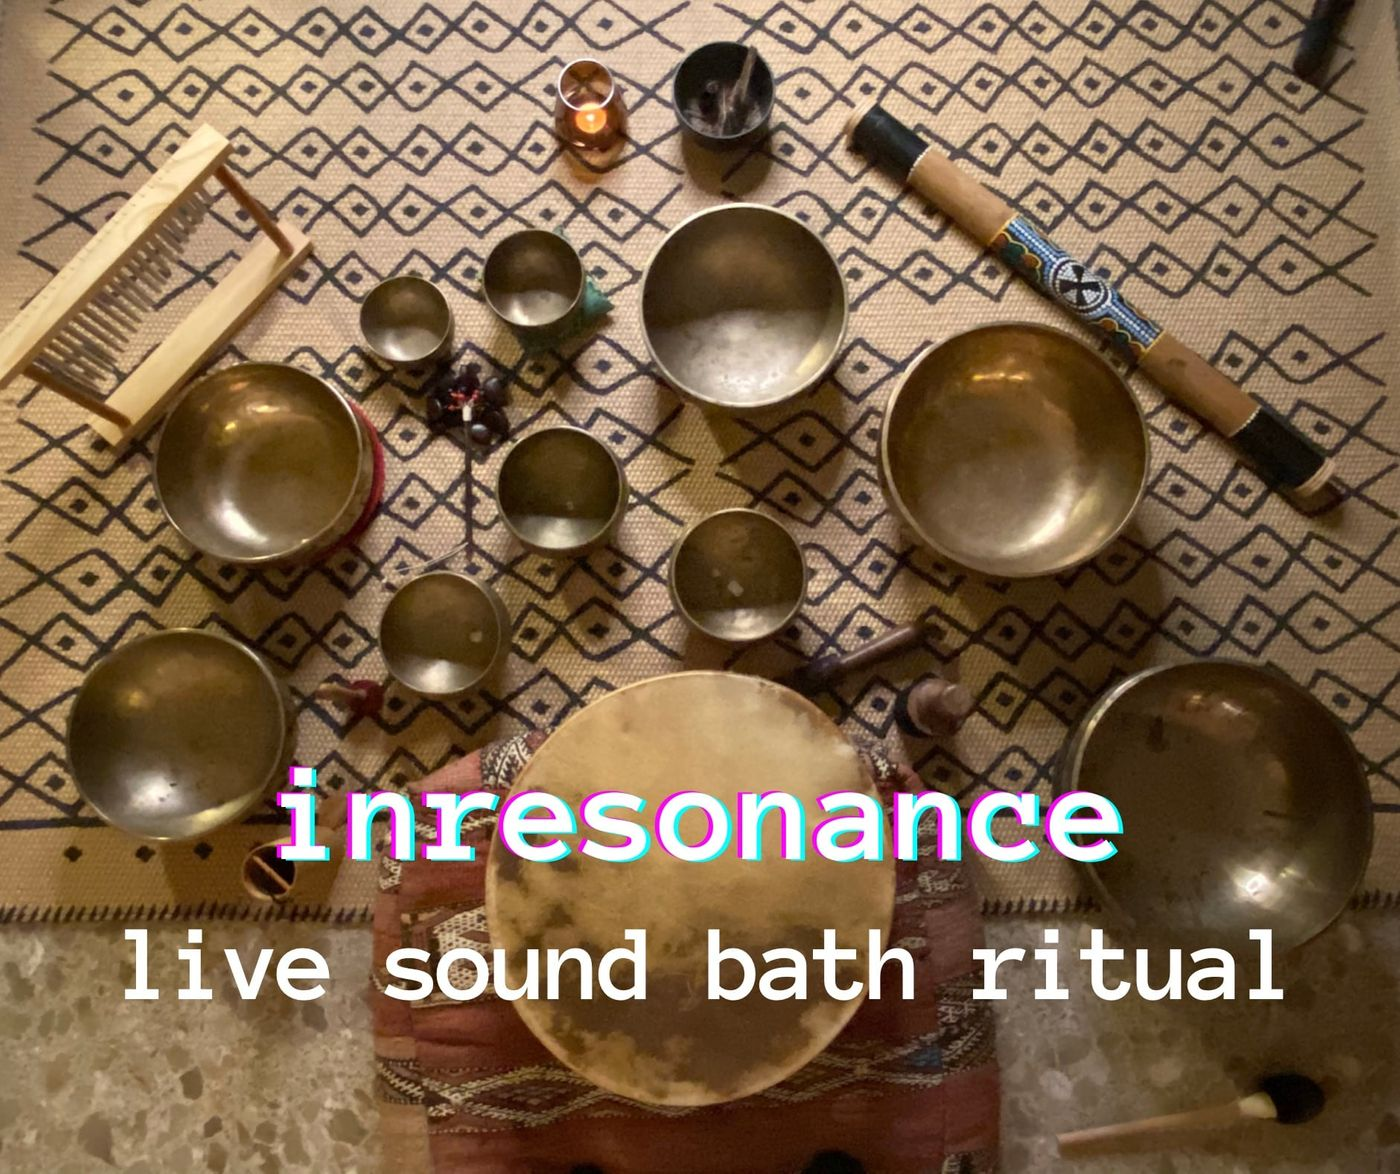 Hello guys! I am introducing this soundbath event in the calendar on a Sunday evening. I thought it could be a nice occasion to come together and allow the vibration and the sound work their magic effect, bringing relaxation and clarity, fresh energy and purpose.  https://bua.fit/class/mRUxVdSLq5pr  Check it out and let me have some feed back!